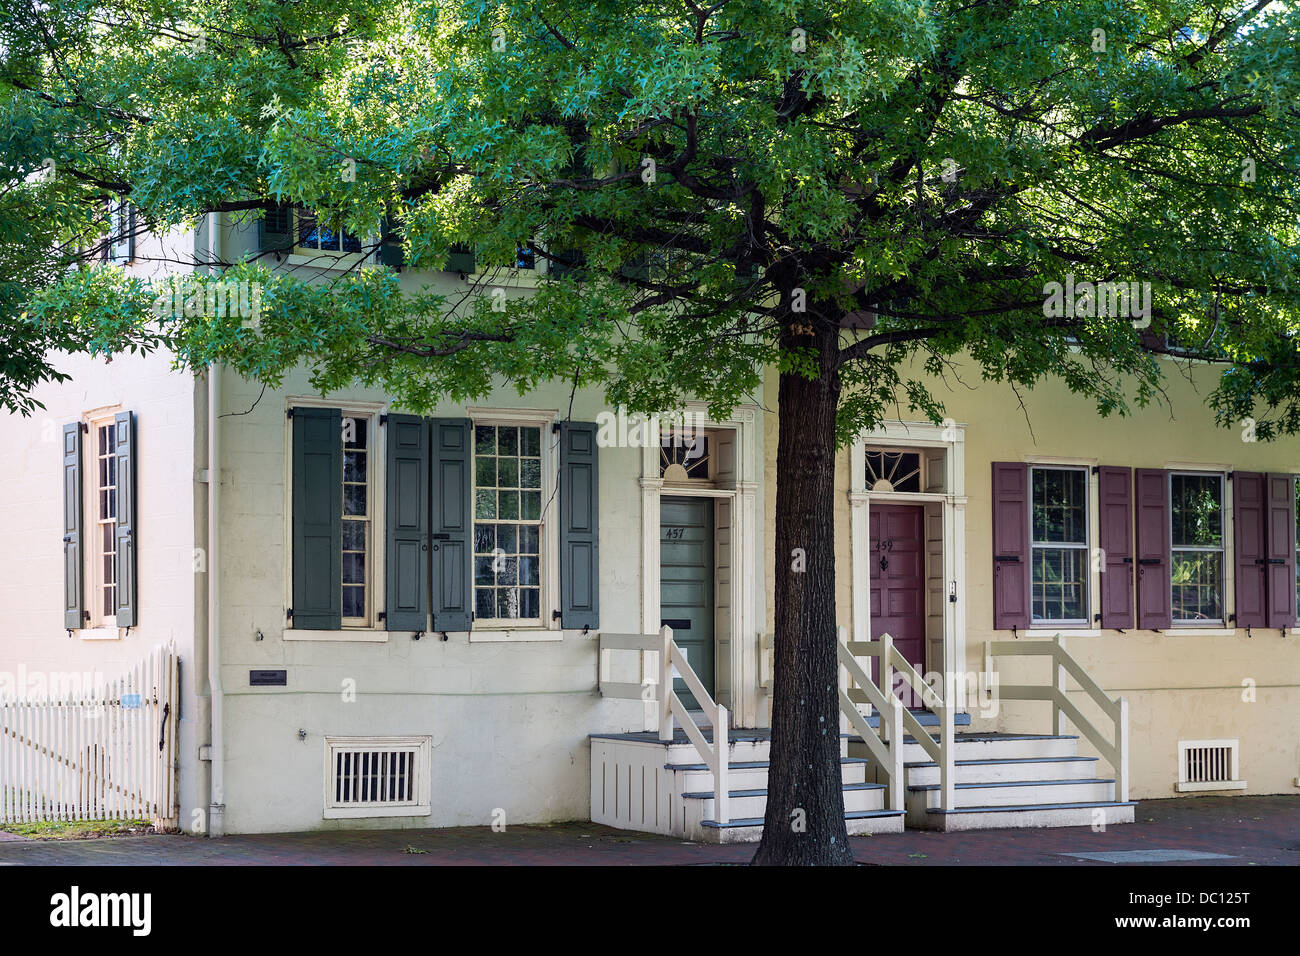 Bith place house of American novilist and writer James Fenimore Cooper, Burlington, New Jersey, USA - Stock Image